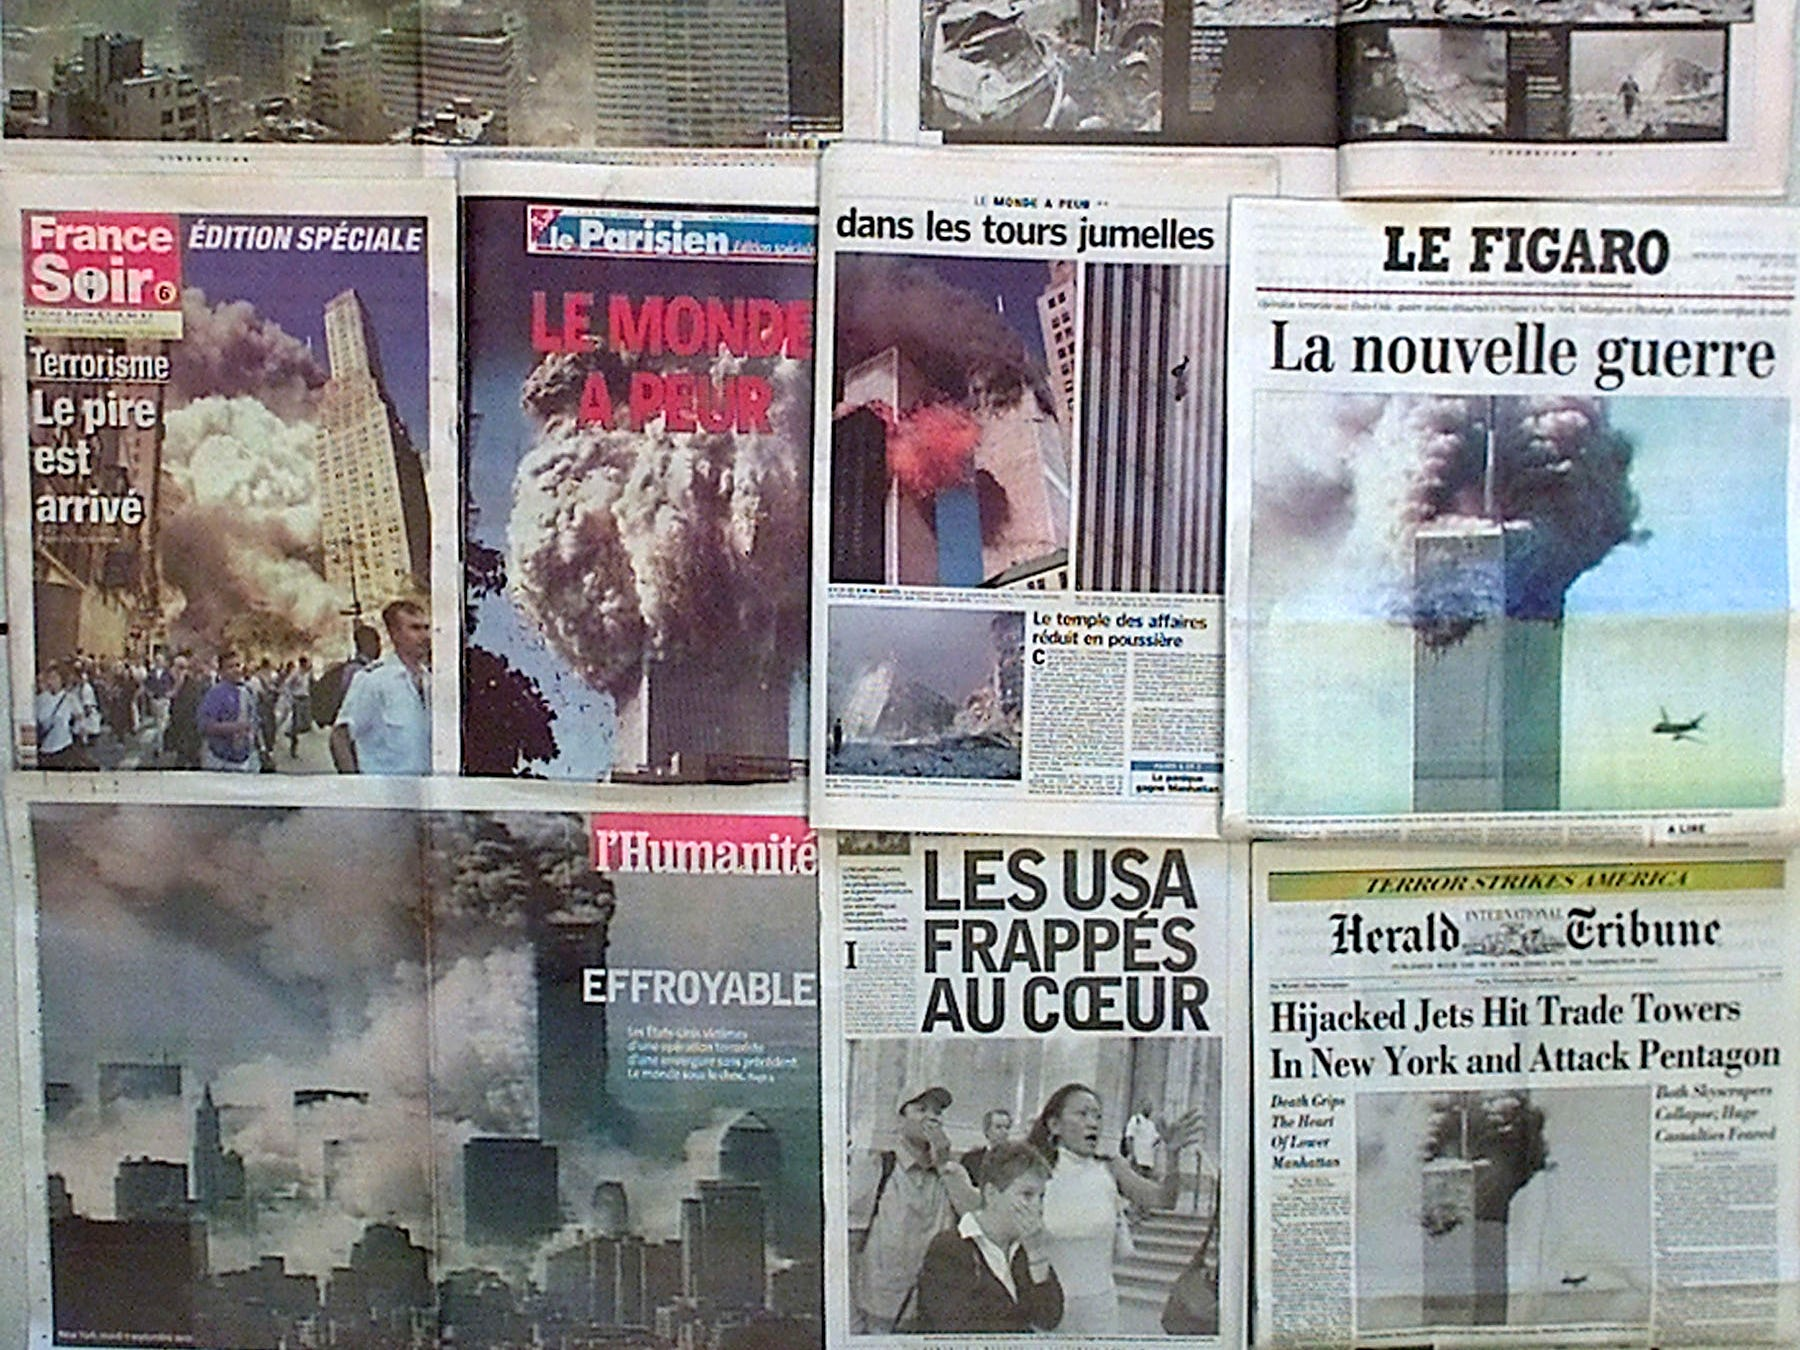 "French national newspapers in Paris Wednesday, Sept. 12, 2001, covering Tuesday's terrorist attacks in the United States.  Headlines read, top: ""11 o'clock in Manhanttan"", middle from left: ""The worst has arrived"", ""The world is afraid"", ""The new war"", and bottom from left: ""Horrendous"", ""The US hit at the heart"". (AP Photo)"